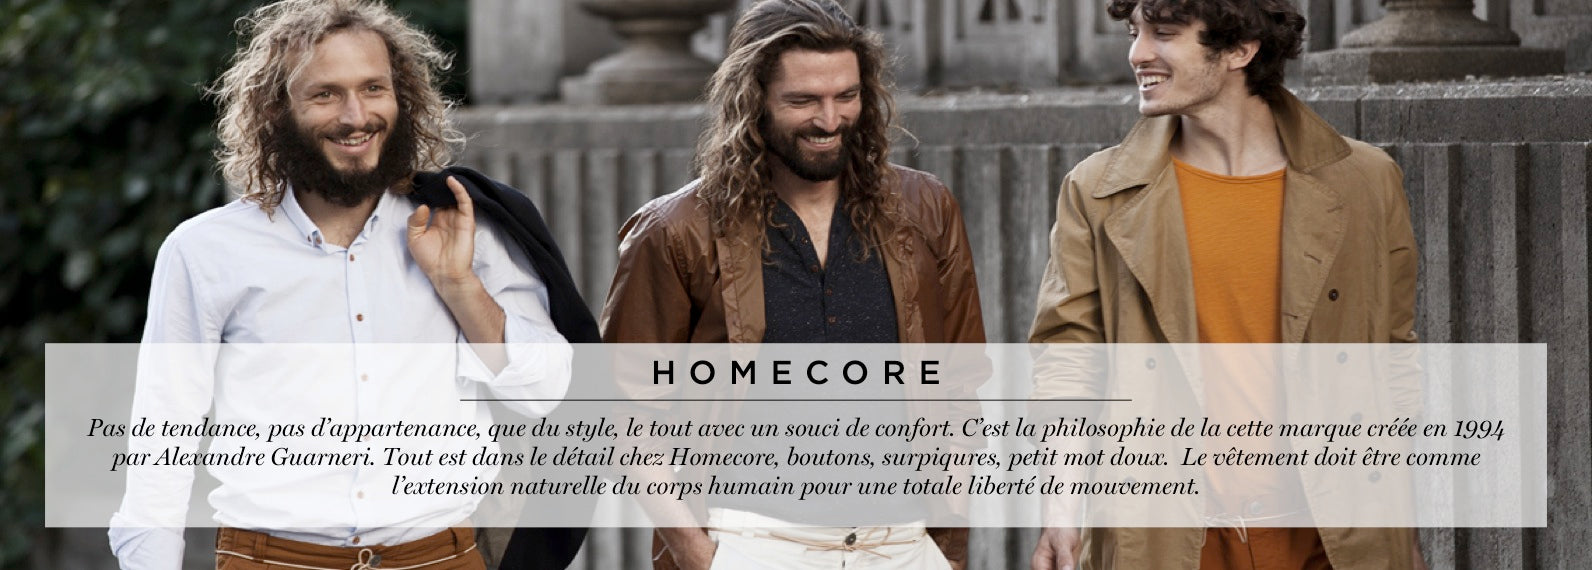 collection homecore homme chemise chino vestes versailles